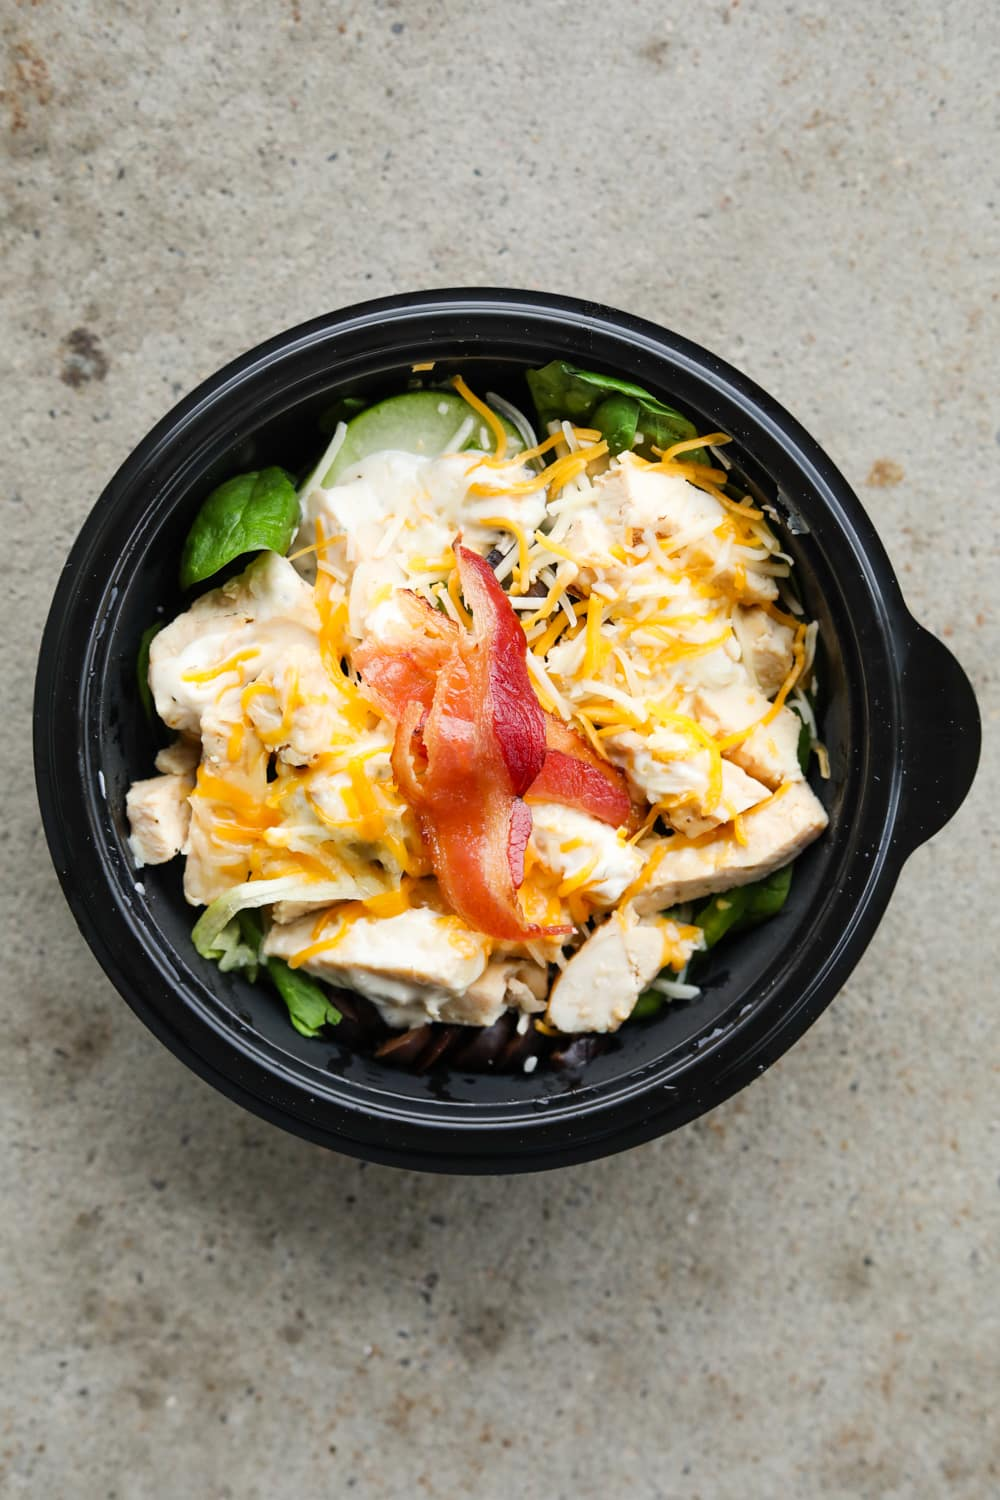 A black bowl filled with green vegetables, chopped chicken, ranch dressing, shredded cheese, and sliced bacon.